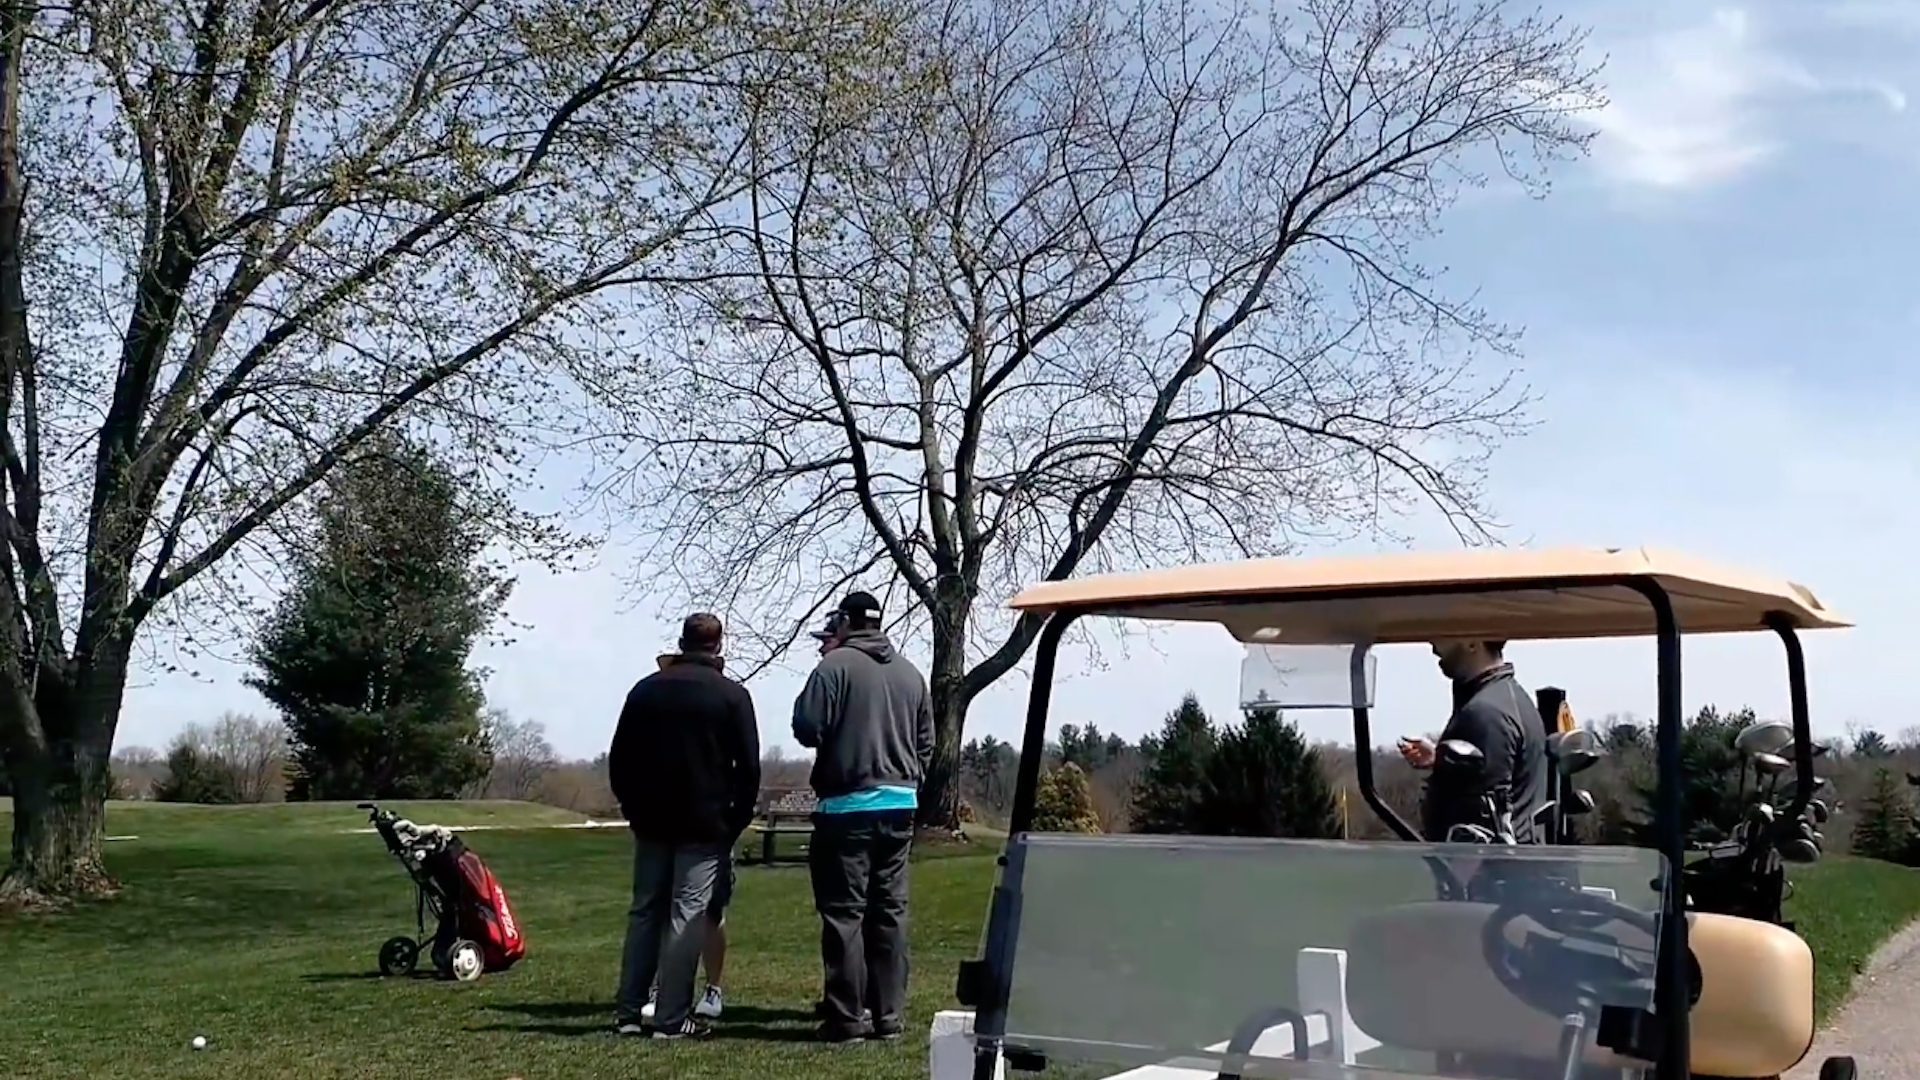 White golf course owners said five African American women were playing too slowly. Then they called the police.